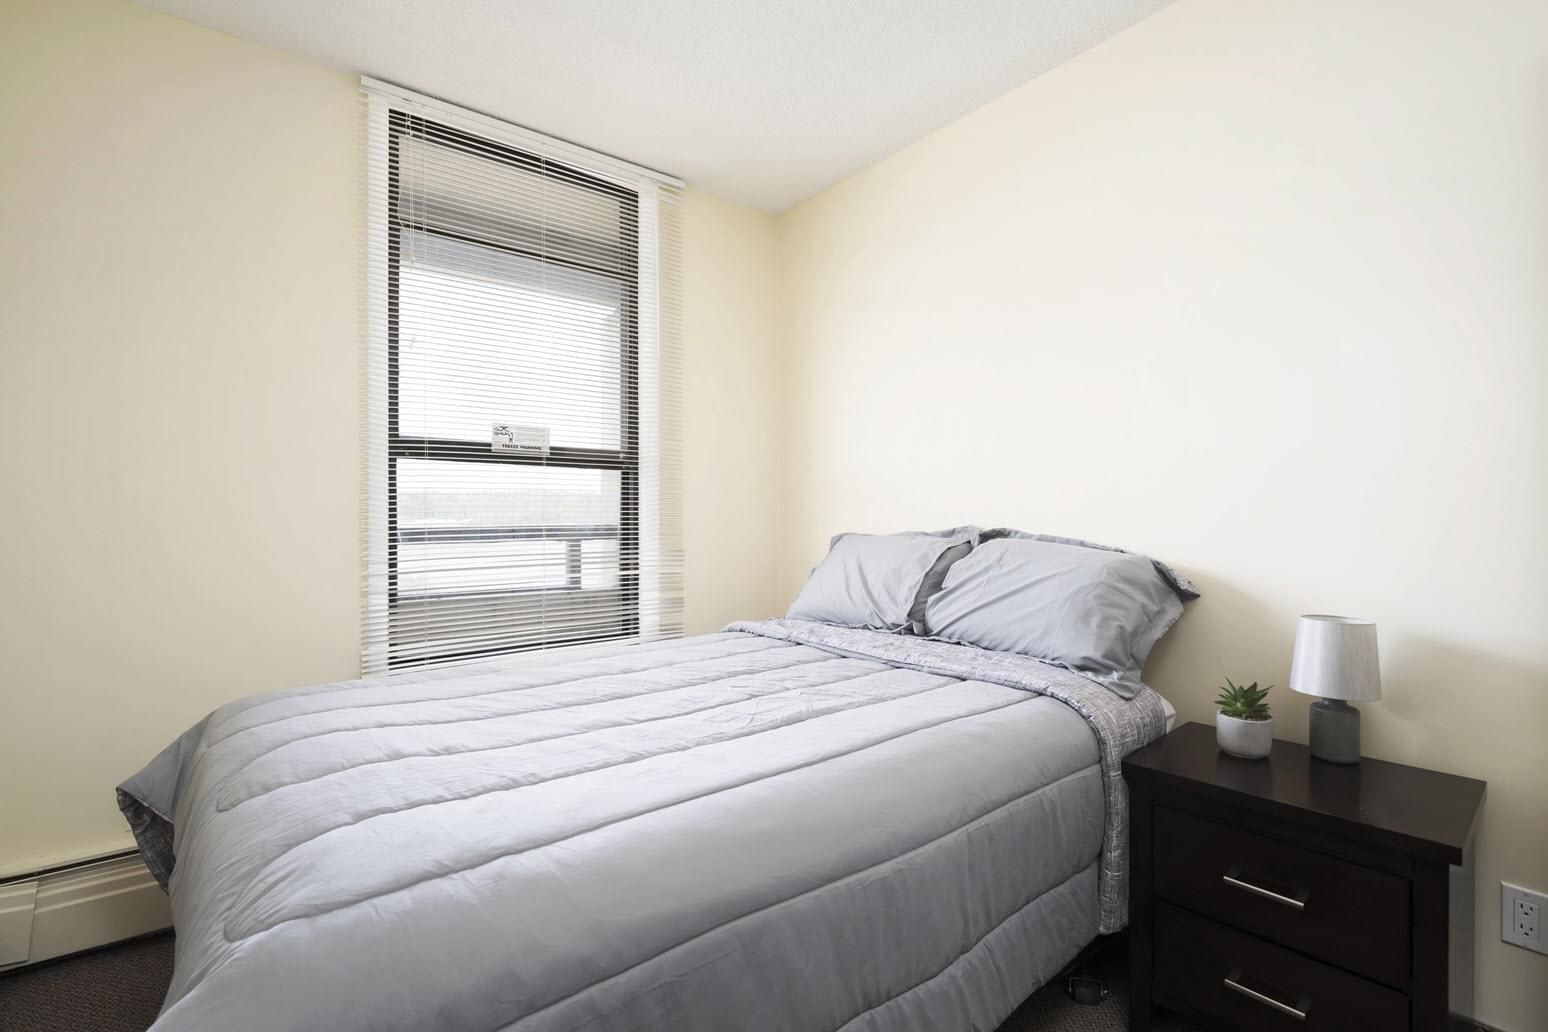 2 bedroom apartment fort mcmurray